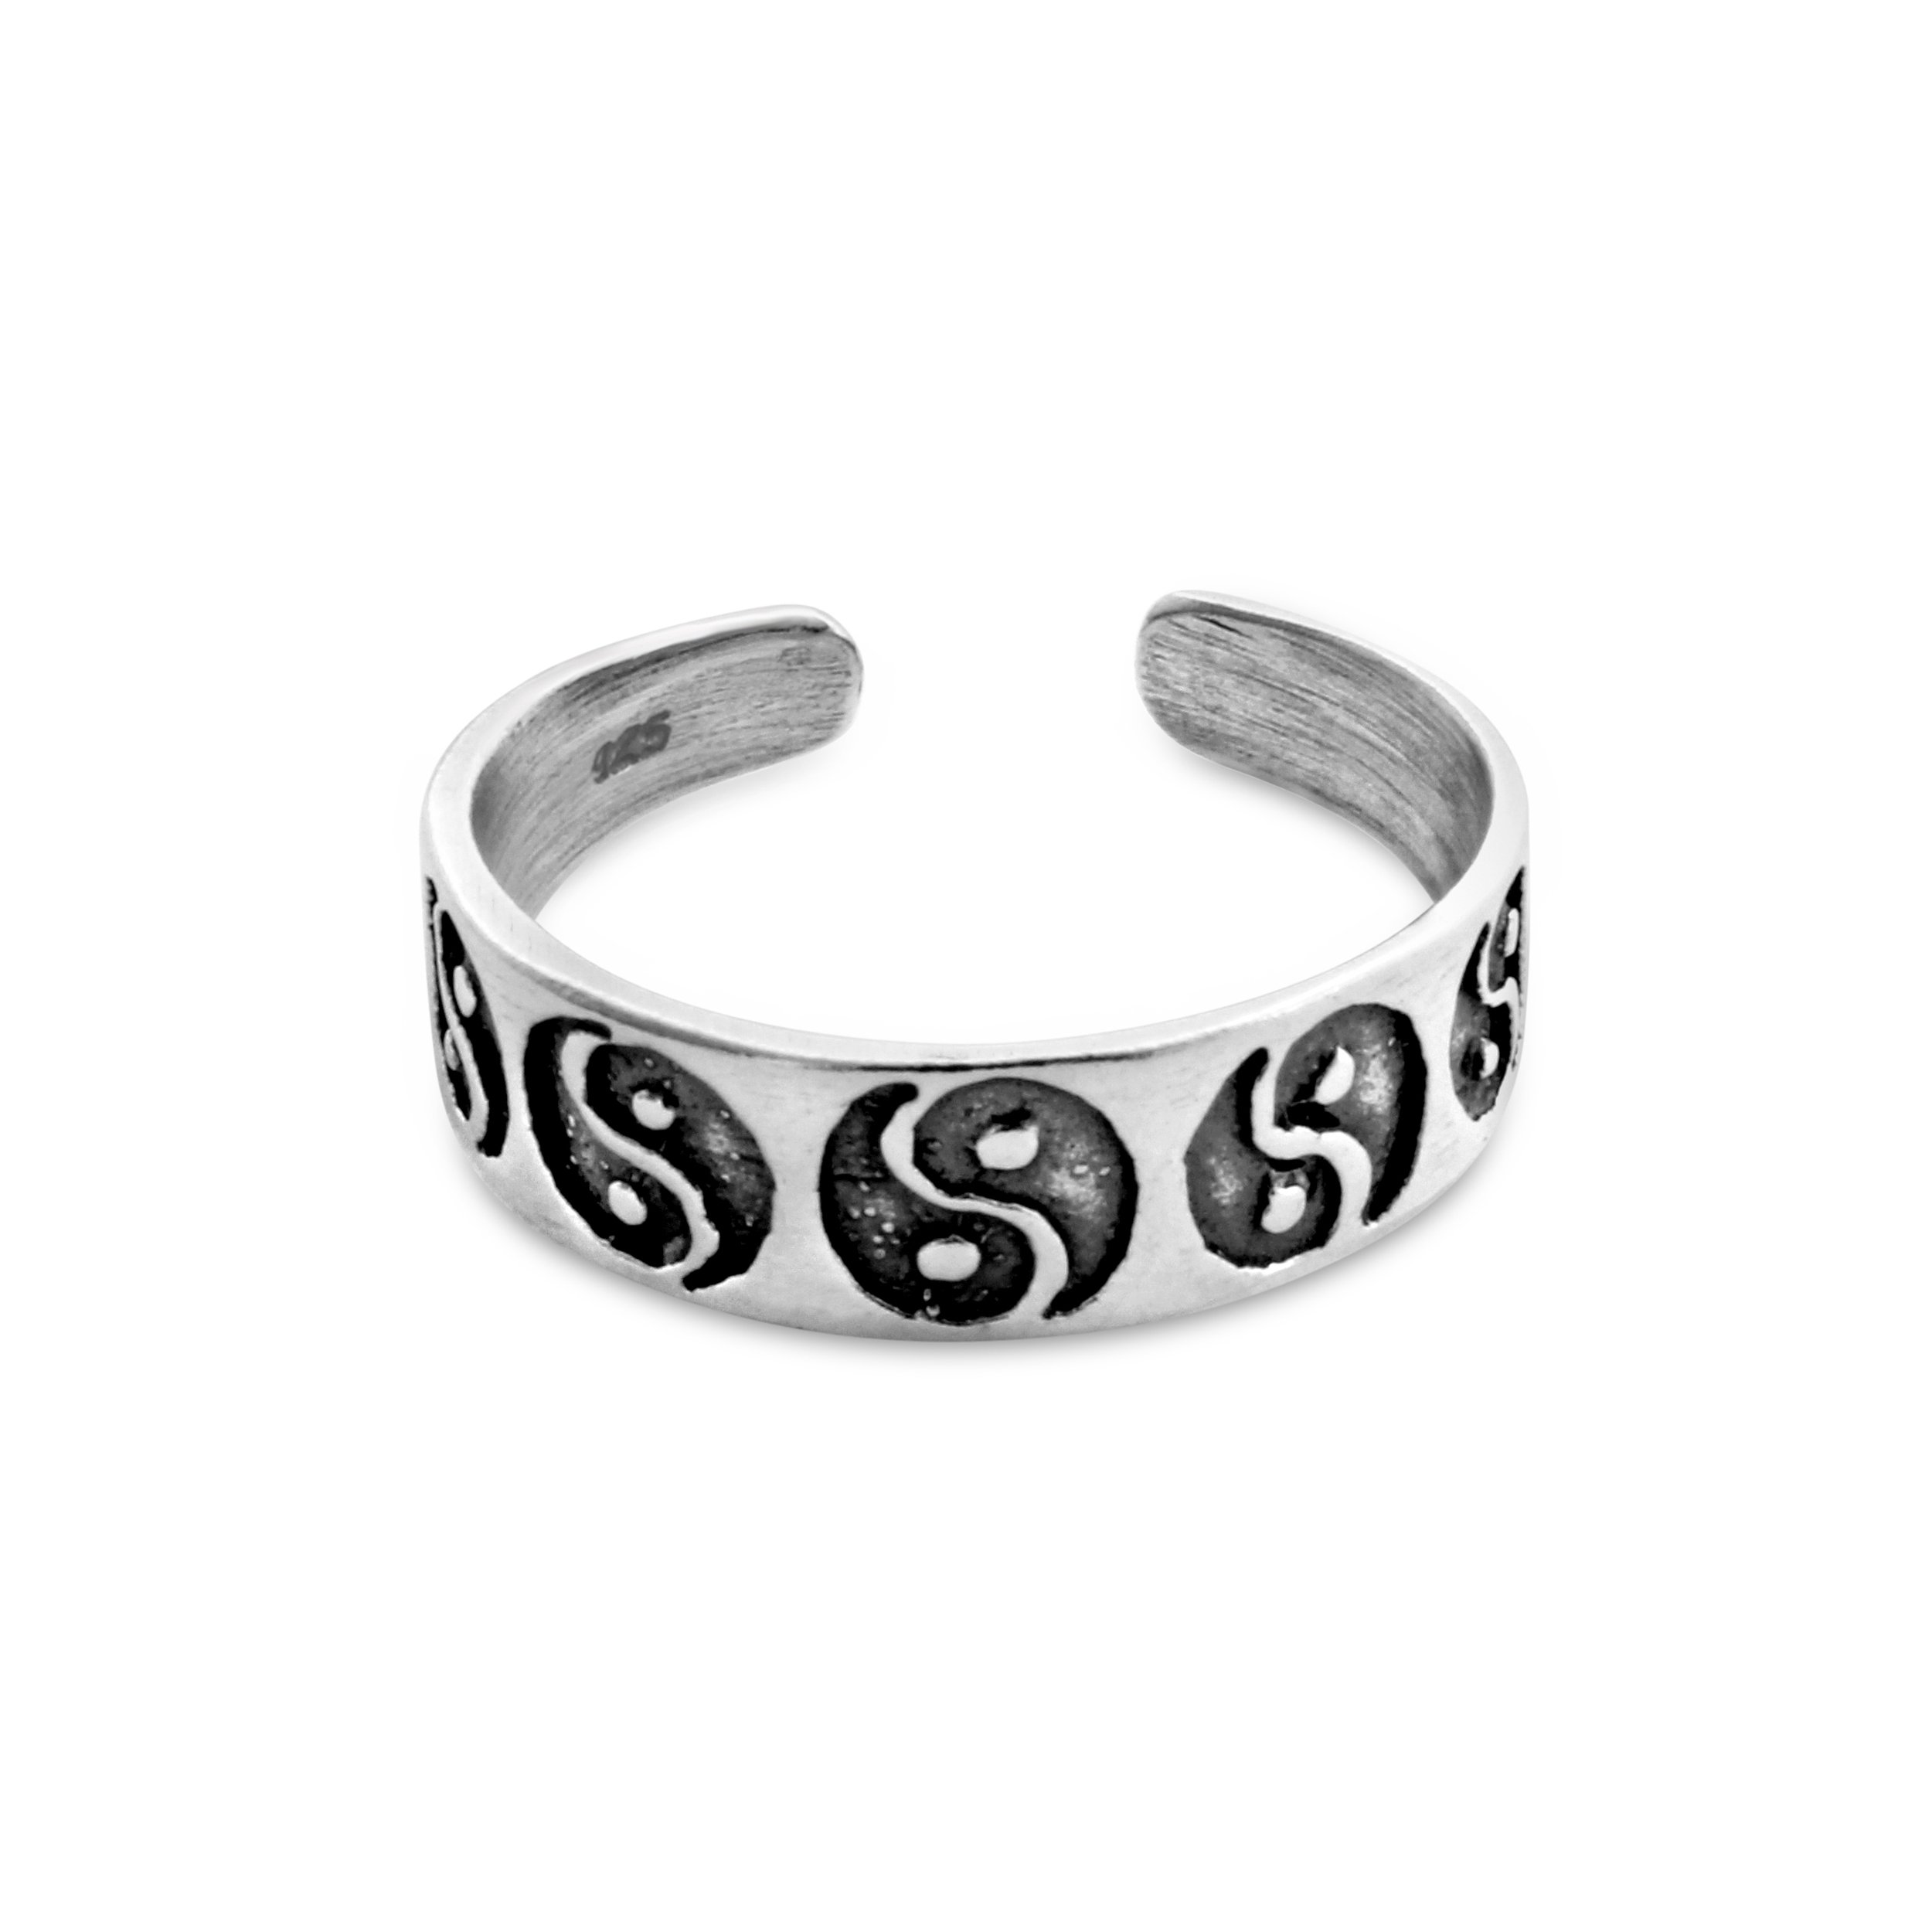 Belcho USA Sterling Silver Handcrafted Ying Yang Adjustable Handcrafted Toe Ring (Sterling-Silver) by Belcho USA